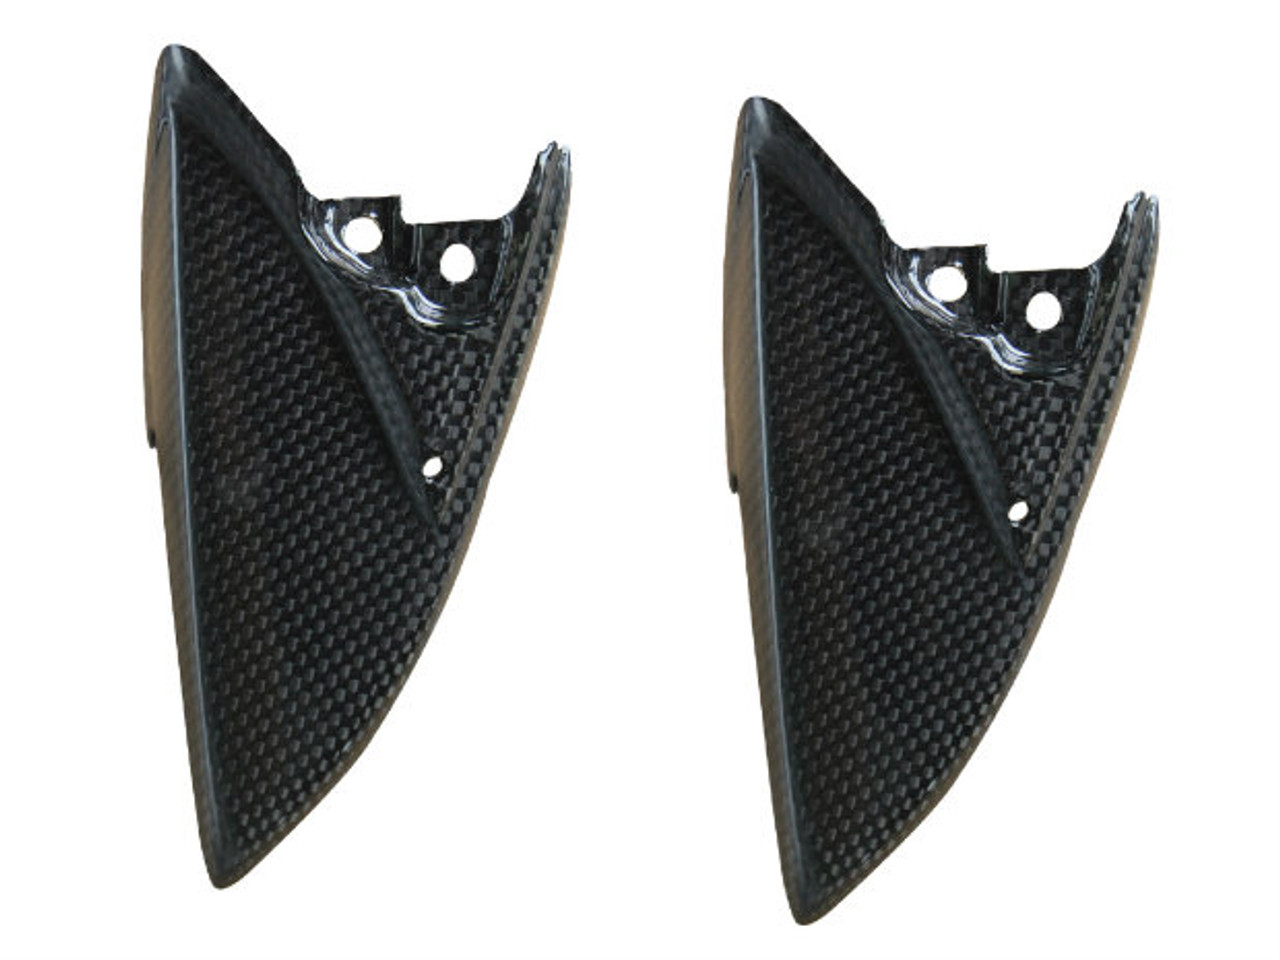 Seat Cowl Lower Panels for Suzuki  GSXR 600, GSXR 750  2011-2019 in Glossy Plain Weave Carbon Fiber